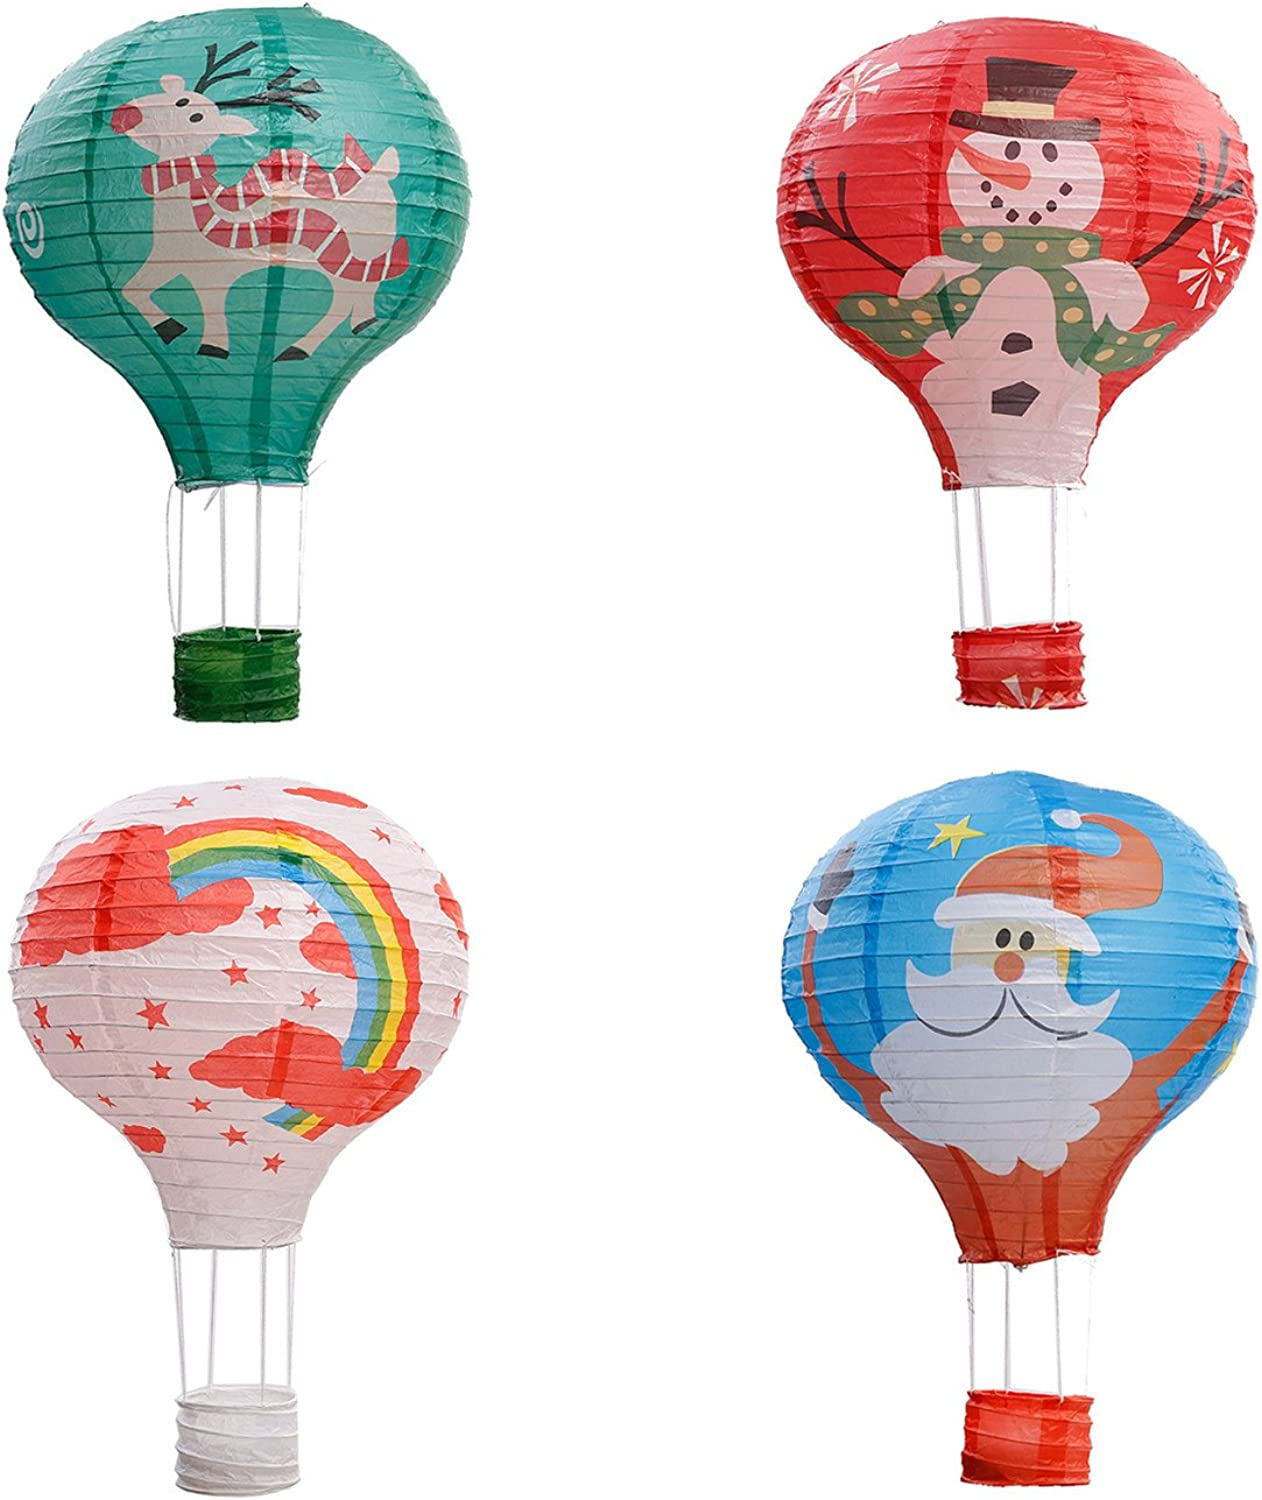 Party Hanging 12 inches Rainbow Hot Air Balloon Paper Lanterns Christmas Accessories Birthday Party Wedding Decoration Christmas Set